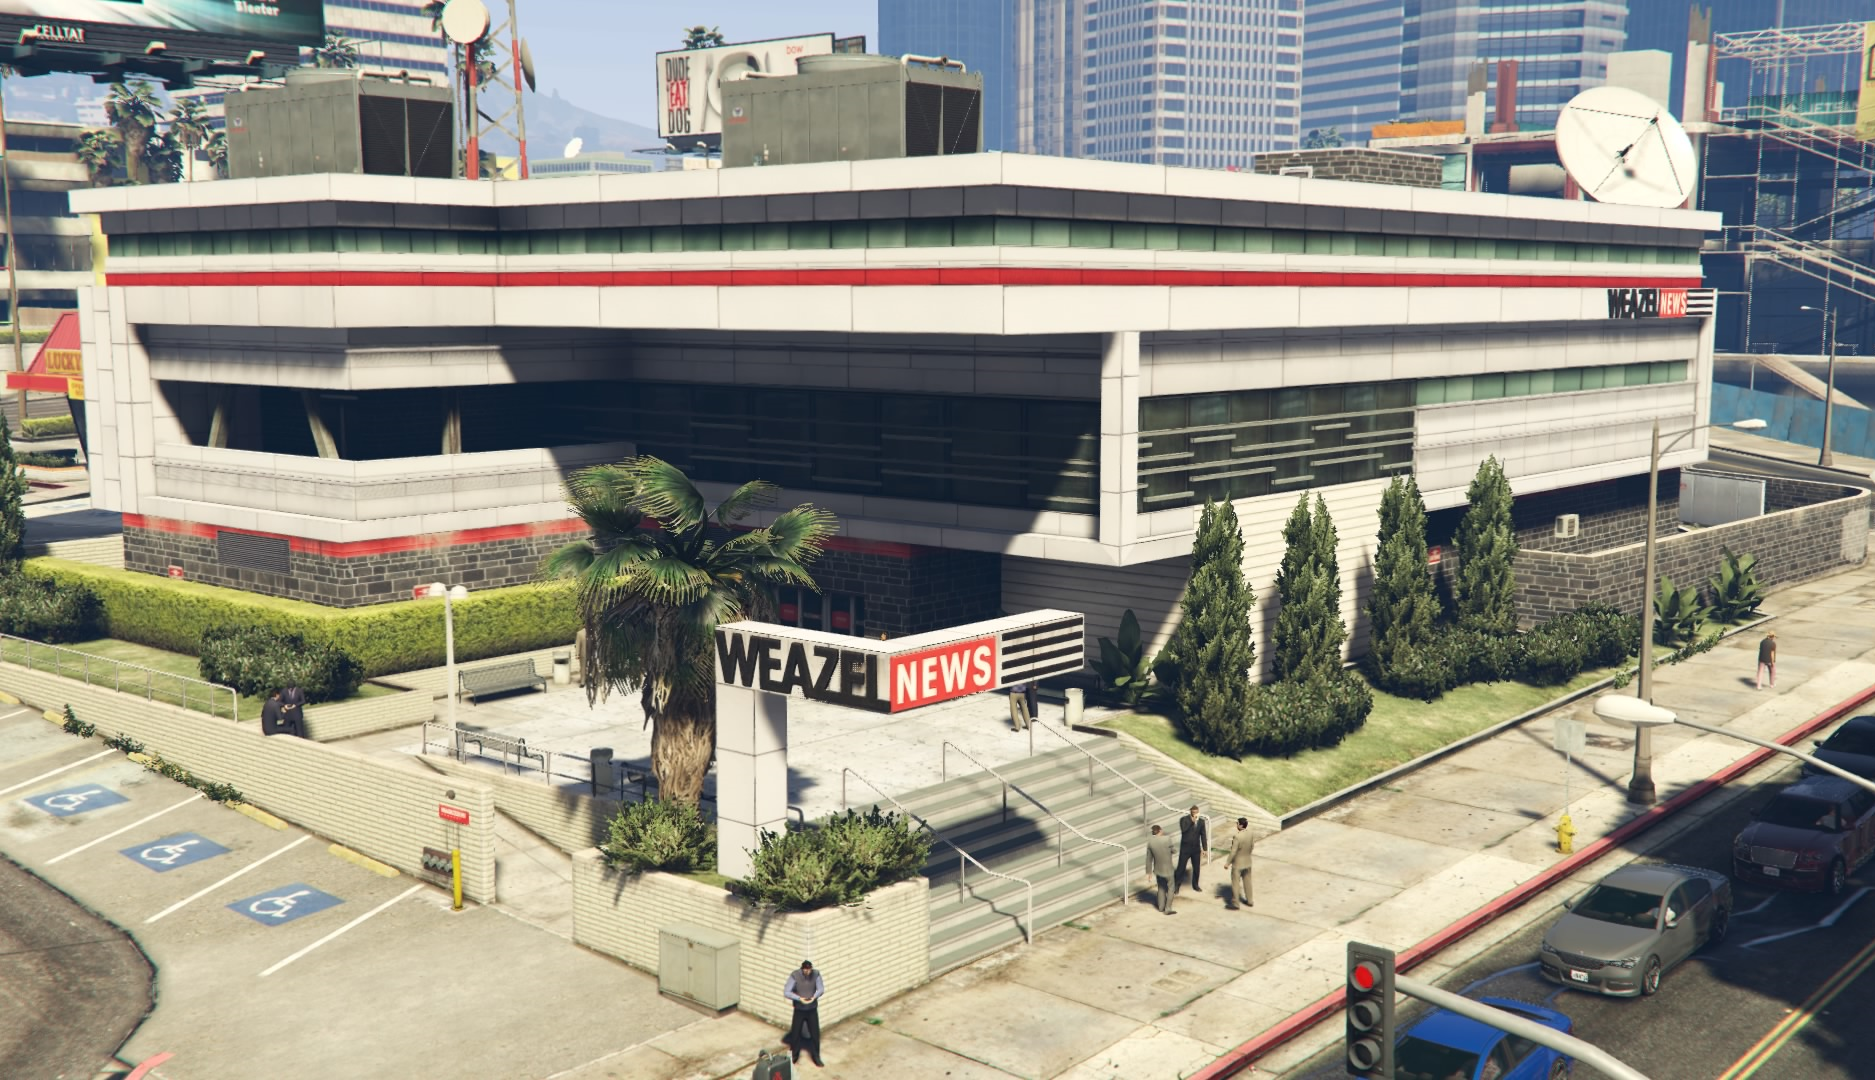 Weazel News Building | GTA Wiki | FANDOM powered by Wikia